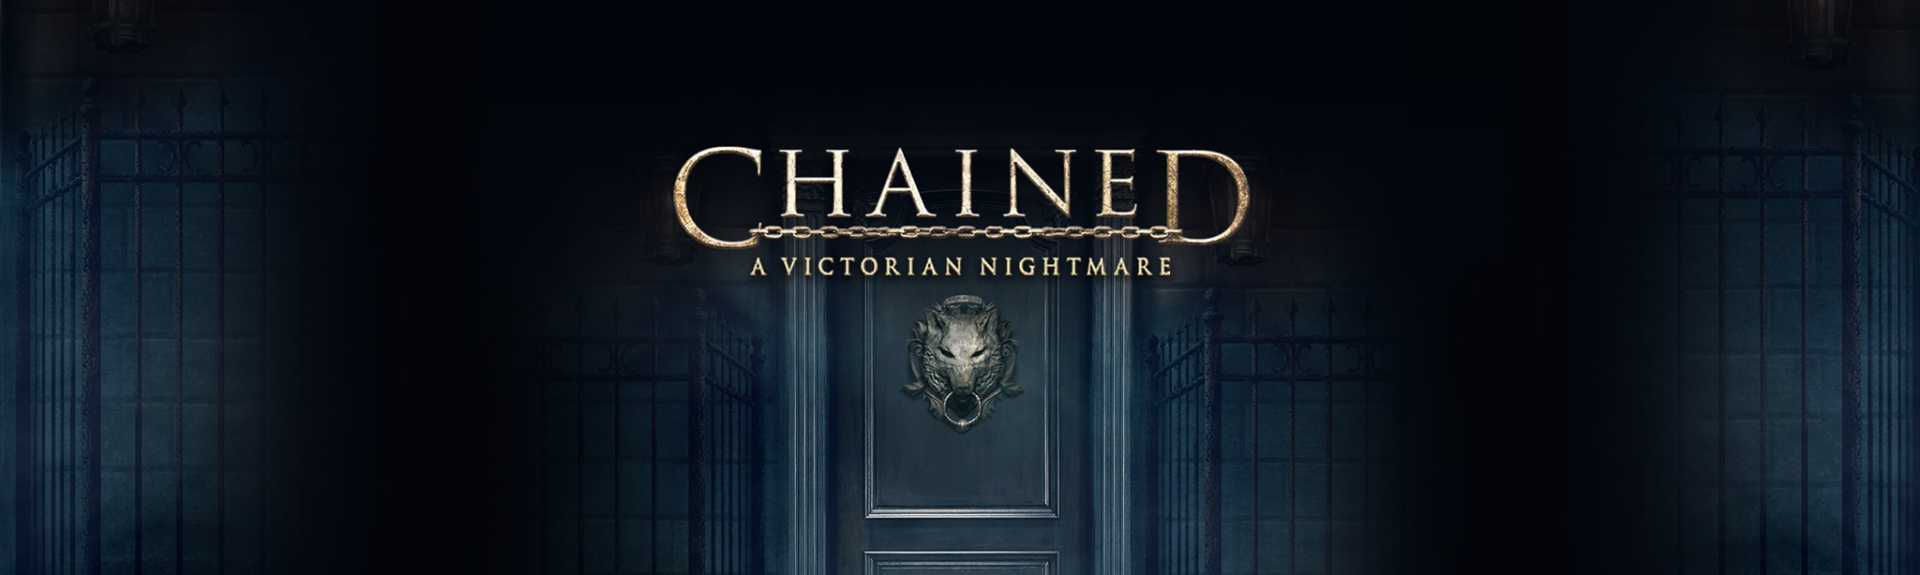 Chained: A Victorian Nightmare